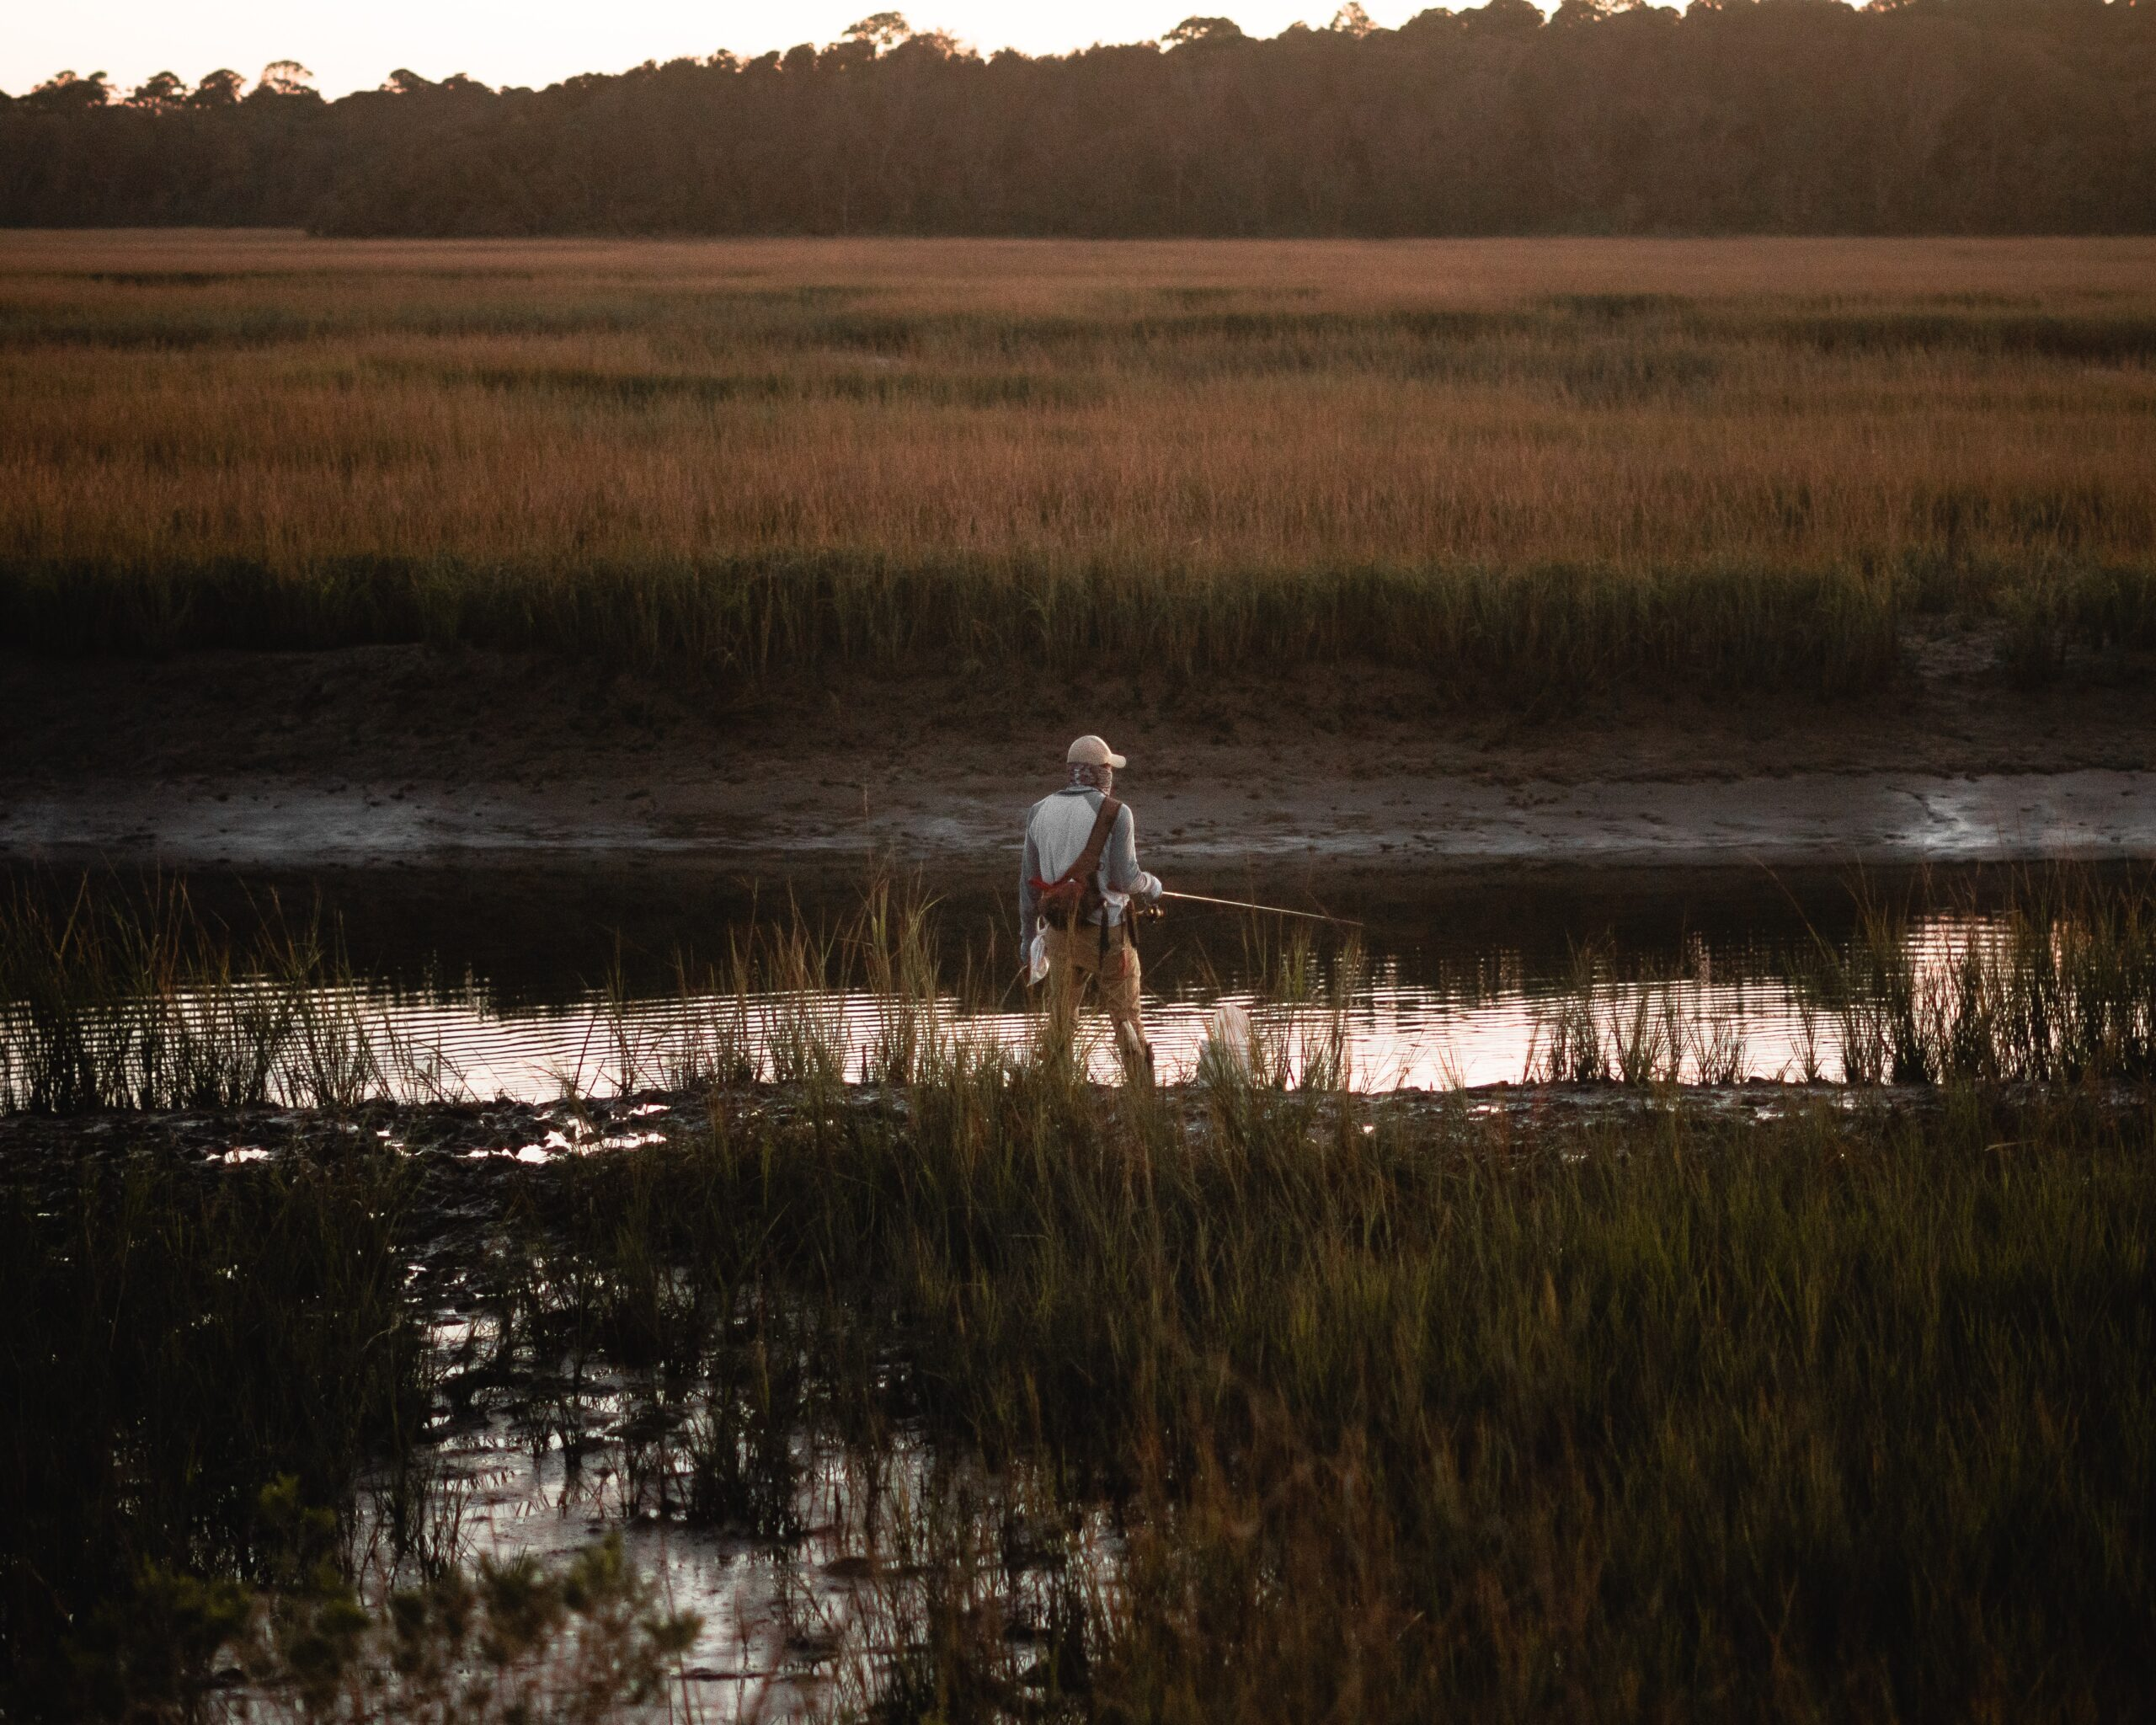 a man fishing in a swamp